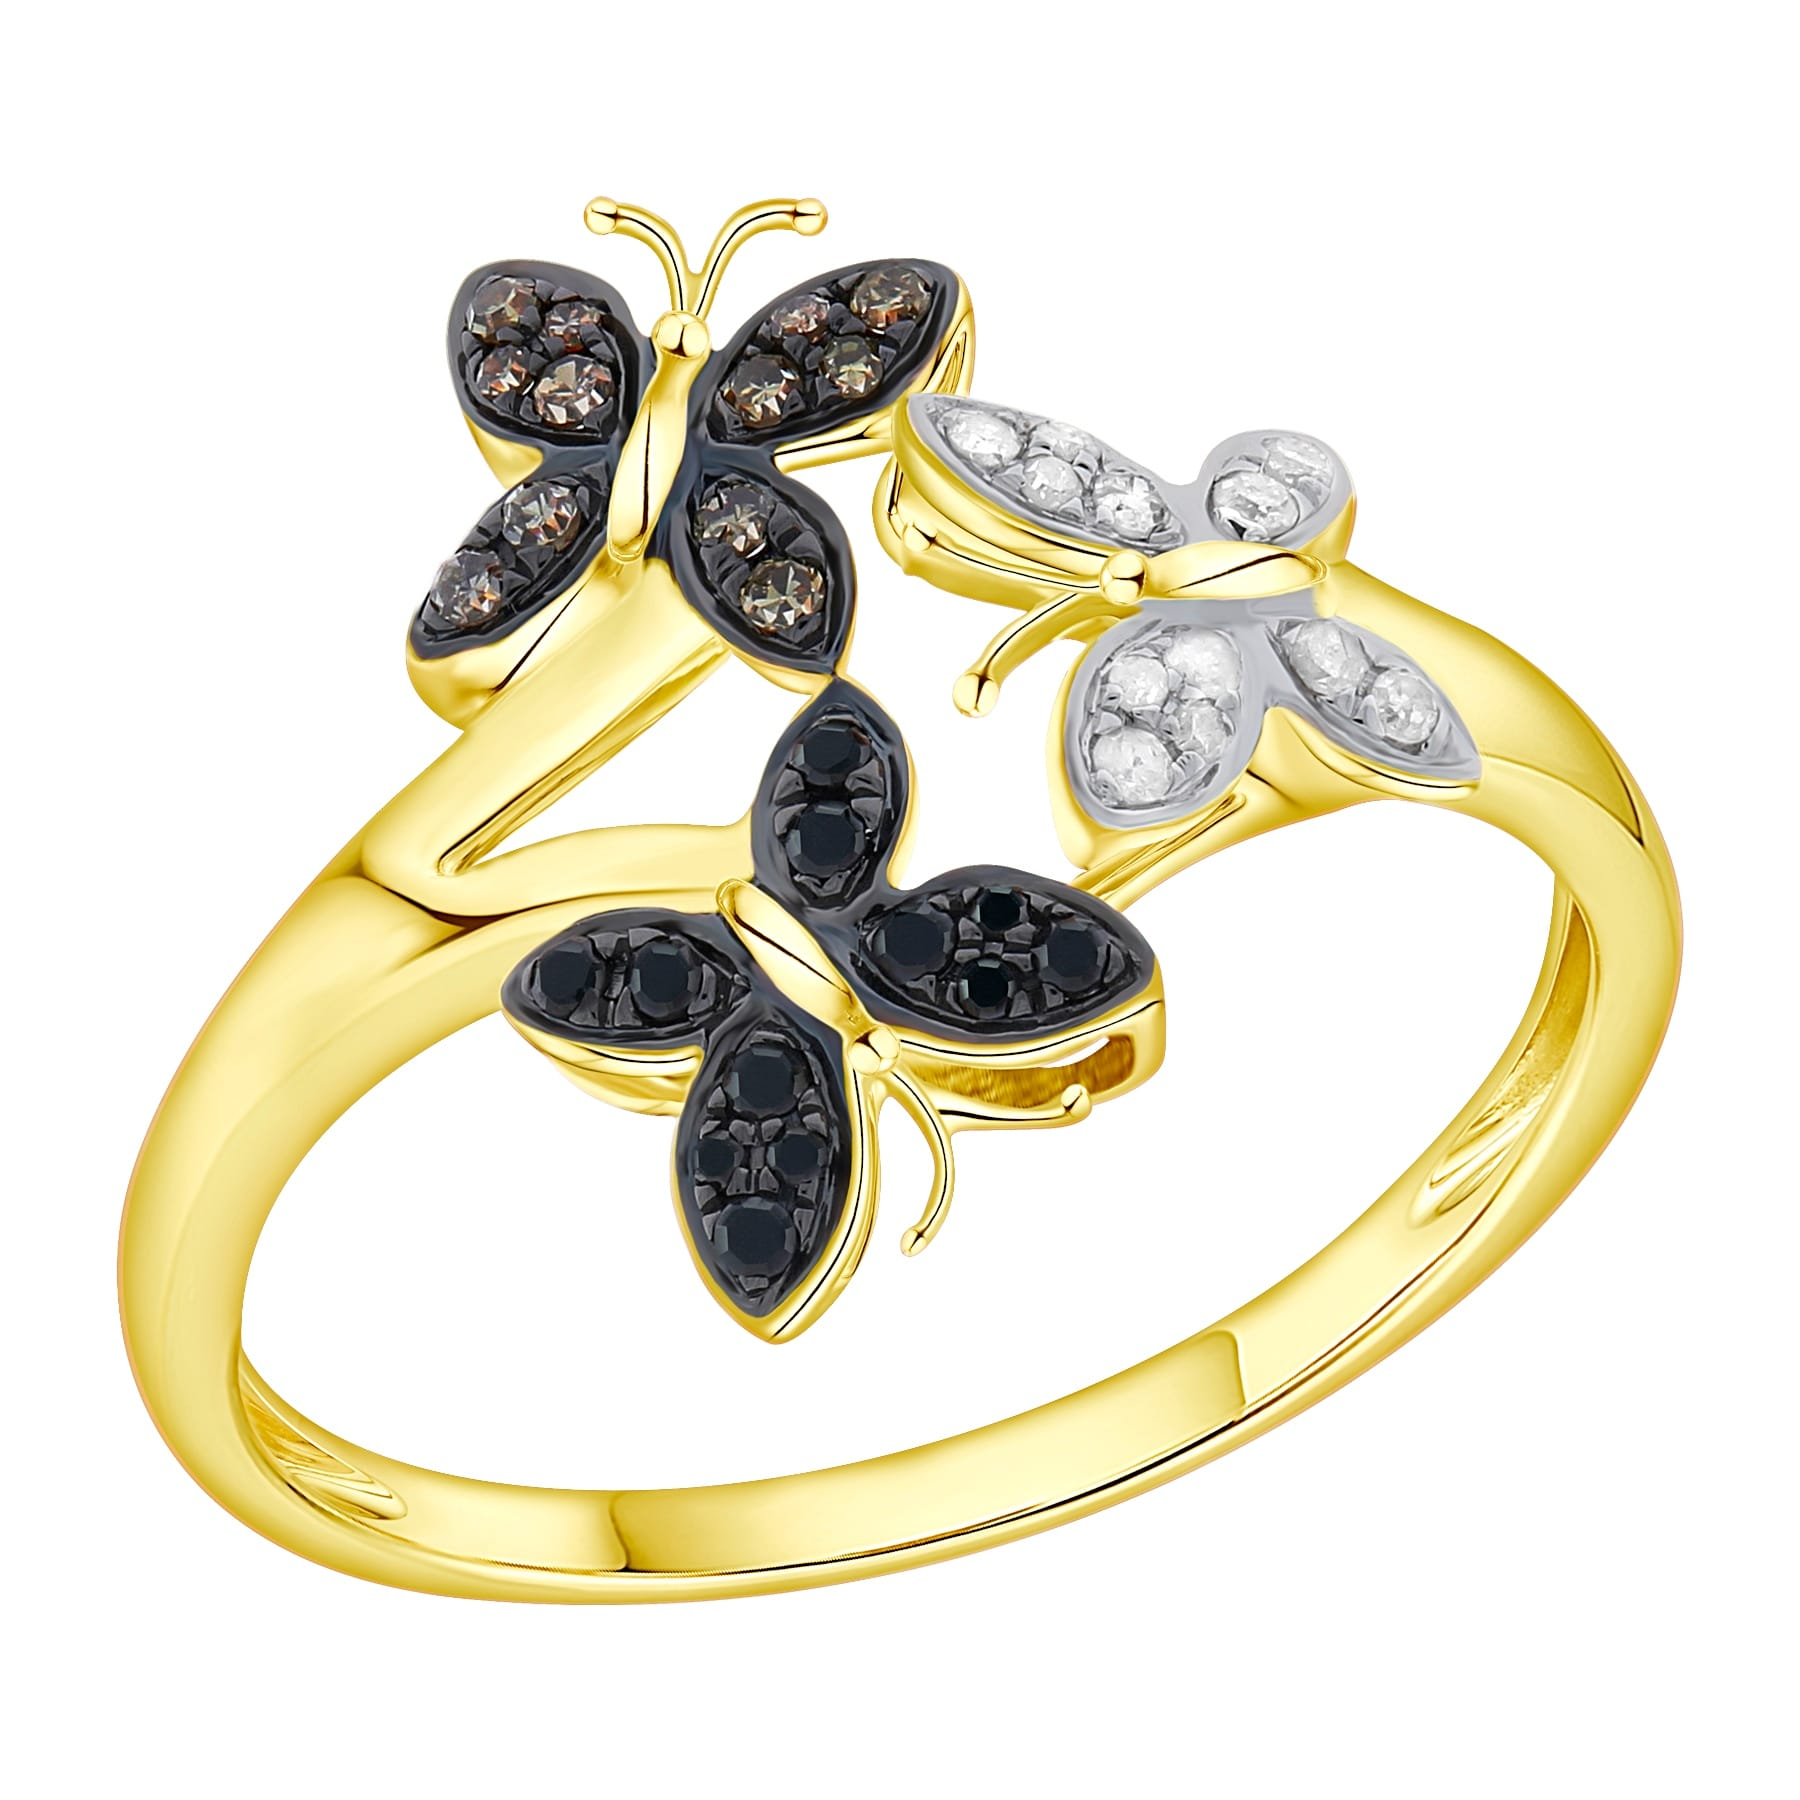 Prism Jewel 0.26 TDW Multi Color Diamond Tri-Butterfly Ring - Black/Brown/White G-H - Thumbnail 0